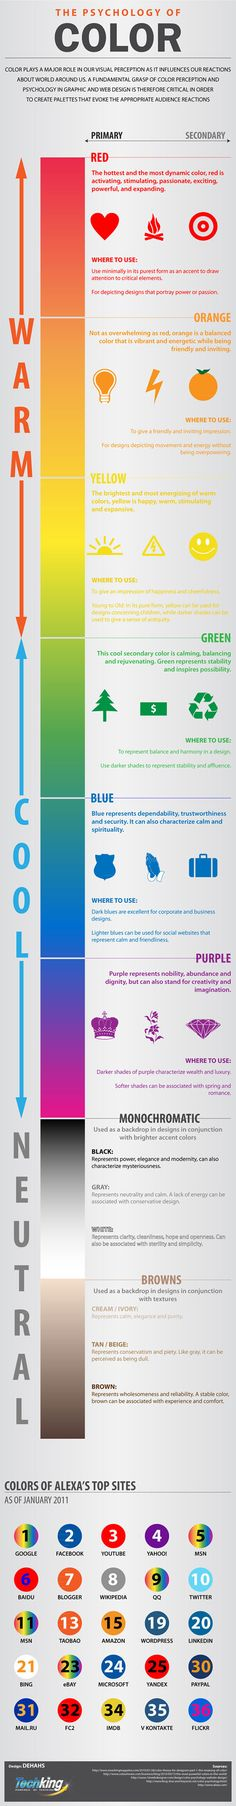 Find out which colors suit your design project best with this info graphic on color